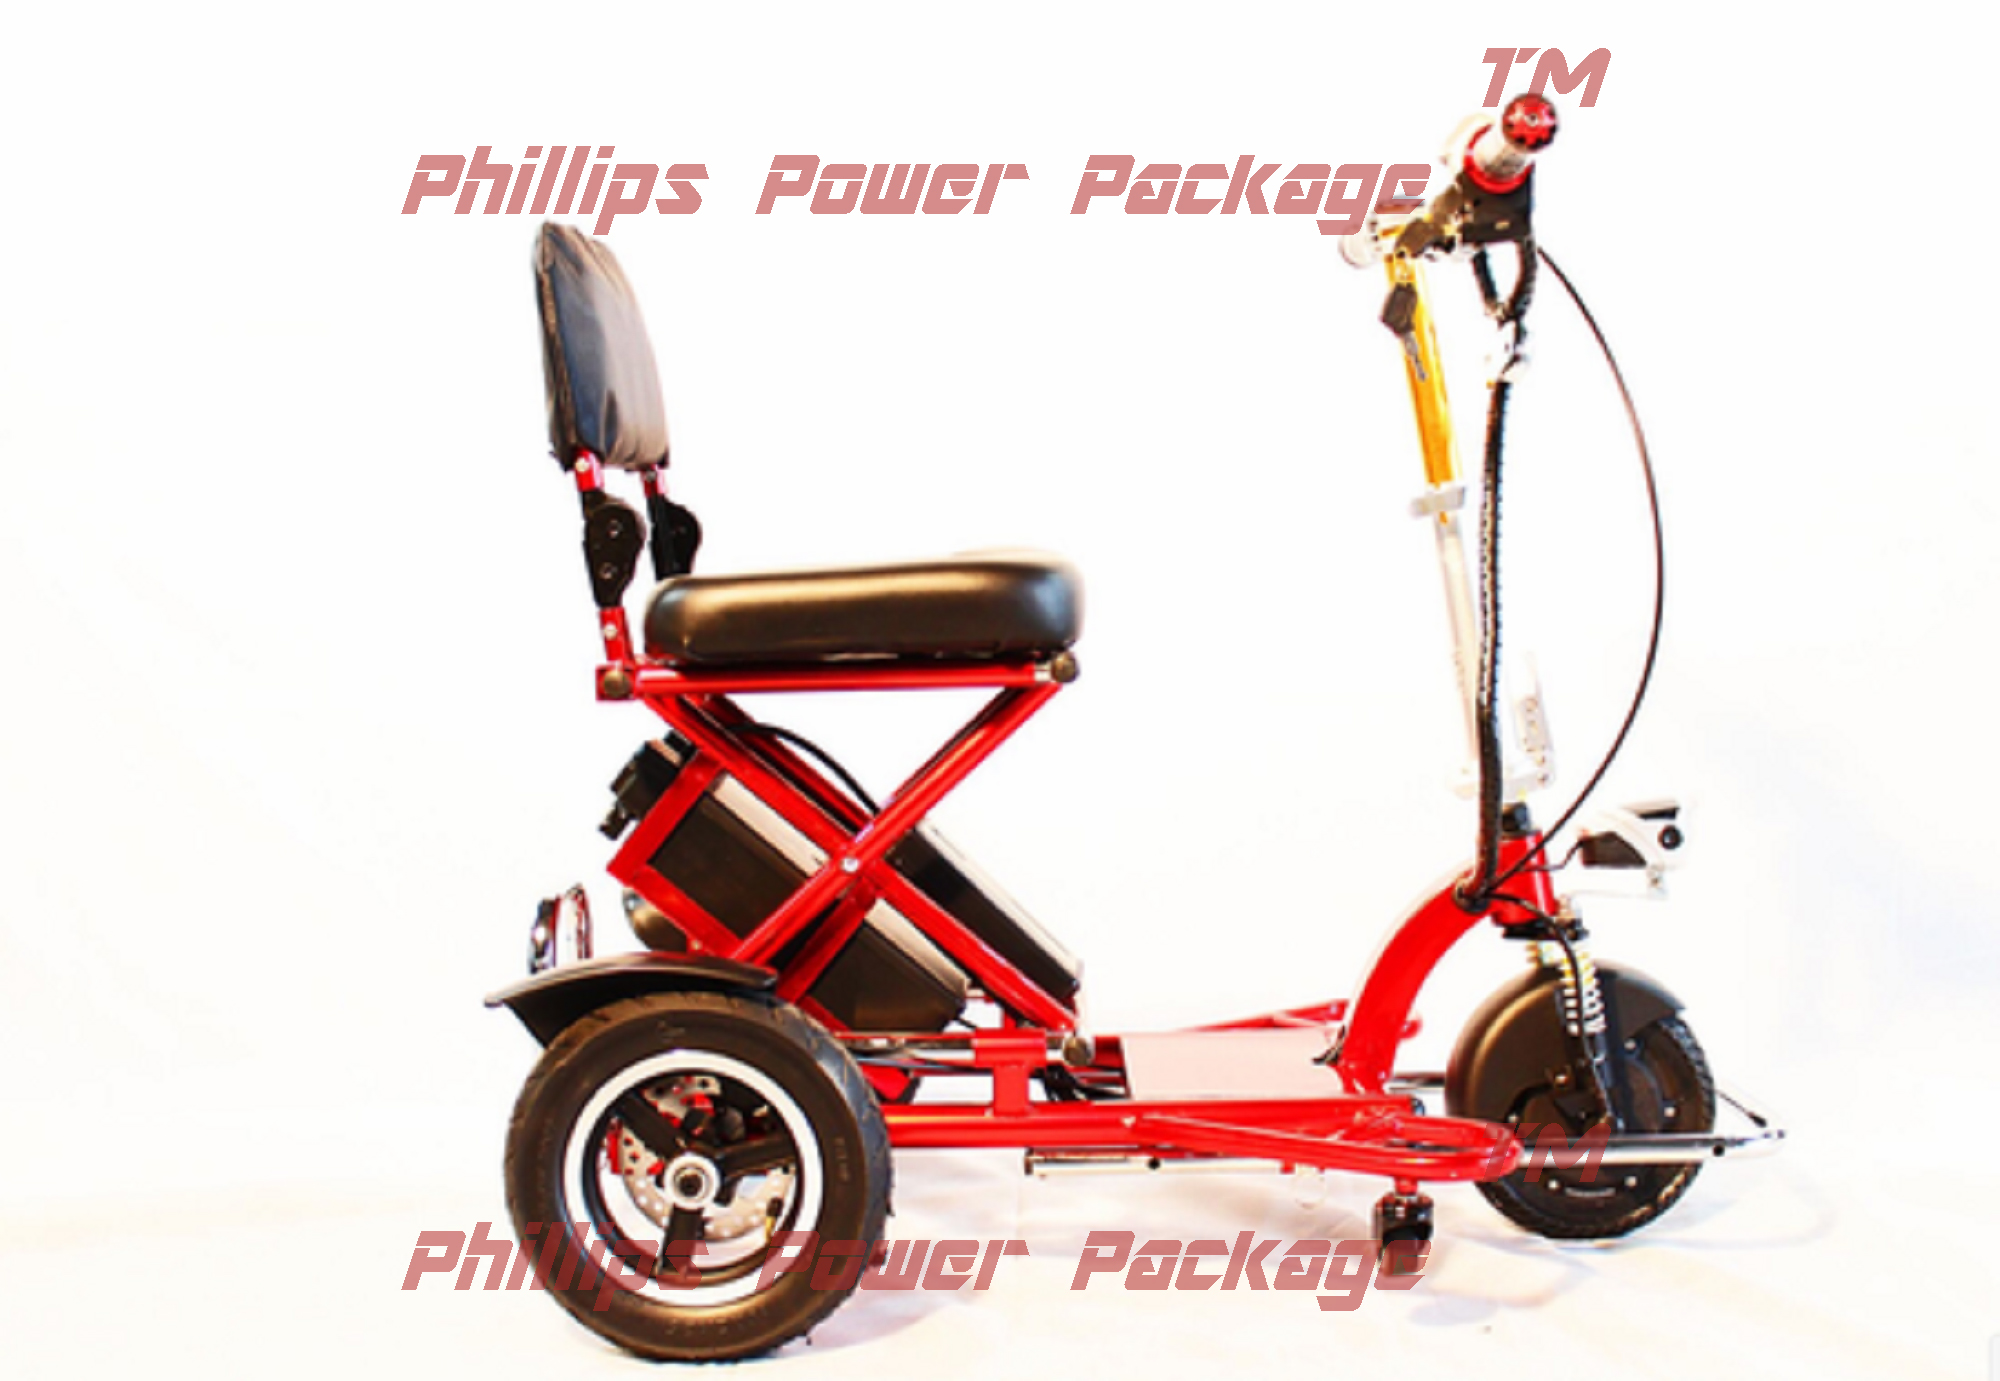 Enhance Mobility Triaxe Sport Portable Folding Scooter 3-Wheel Red PHILLIPS POWER PACKAGE TM $500 VALUE by